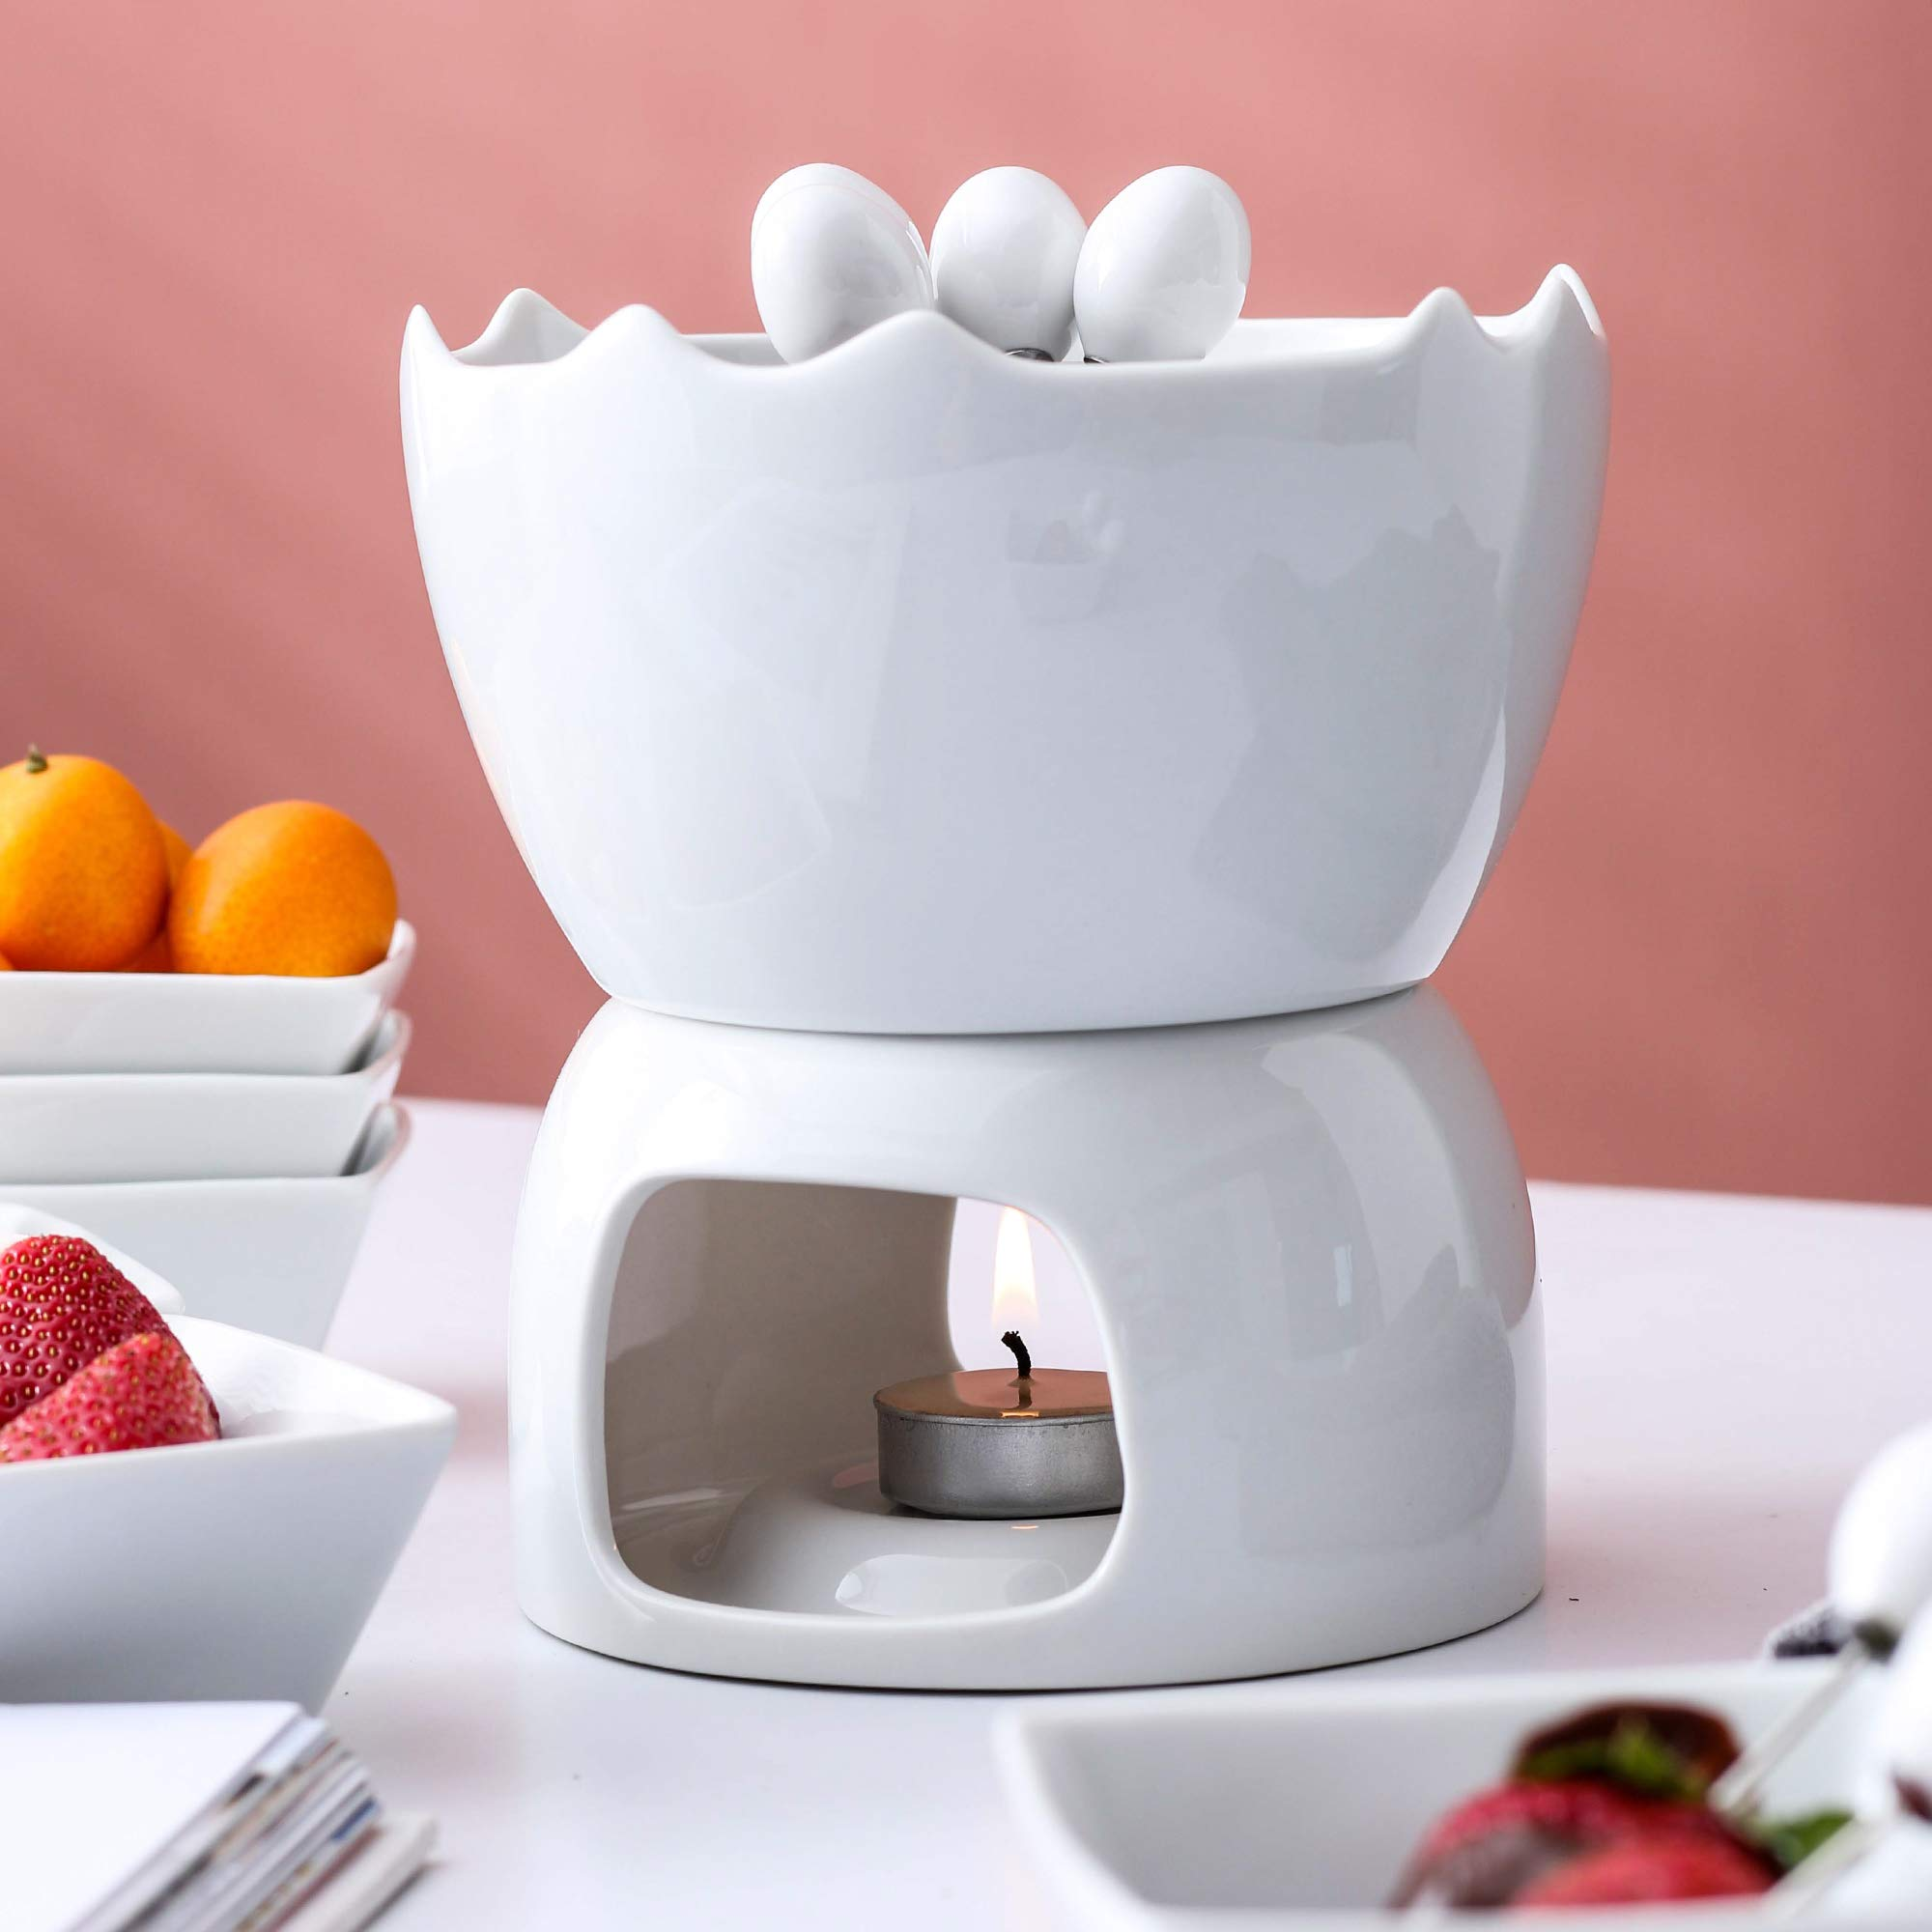 Malacasa Fondue Pot Set Two-layer Porcelain Tealight Chocolate Fondue with Dipping Bowls and Forks for 6, Cheese Fondue or Butter Fondue Set, White by Malacasa (Image #9)